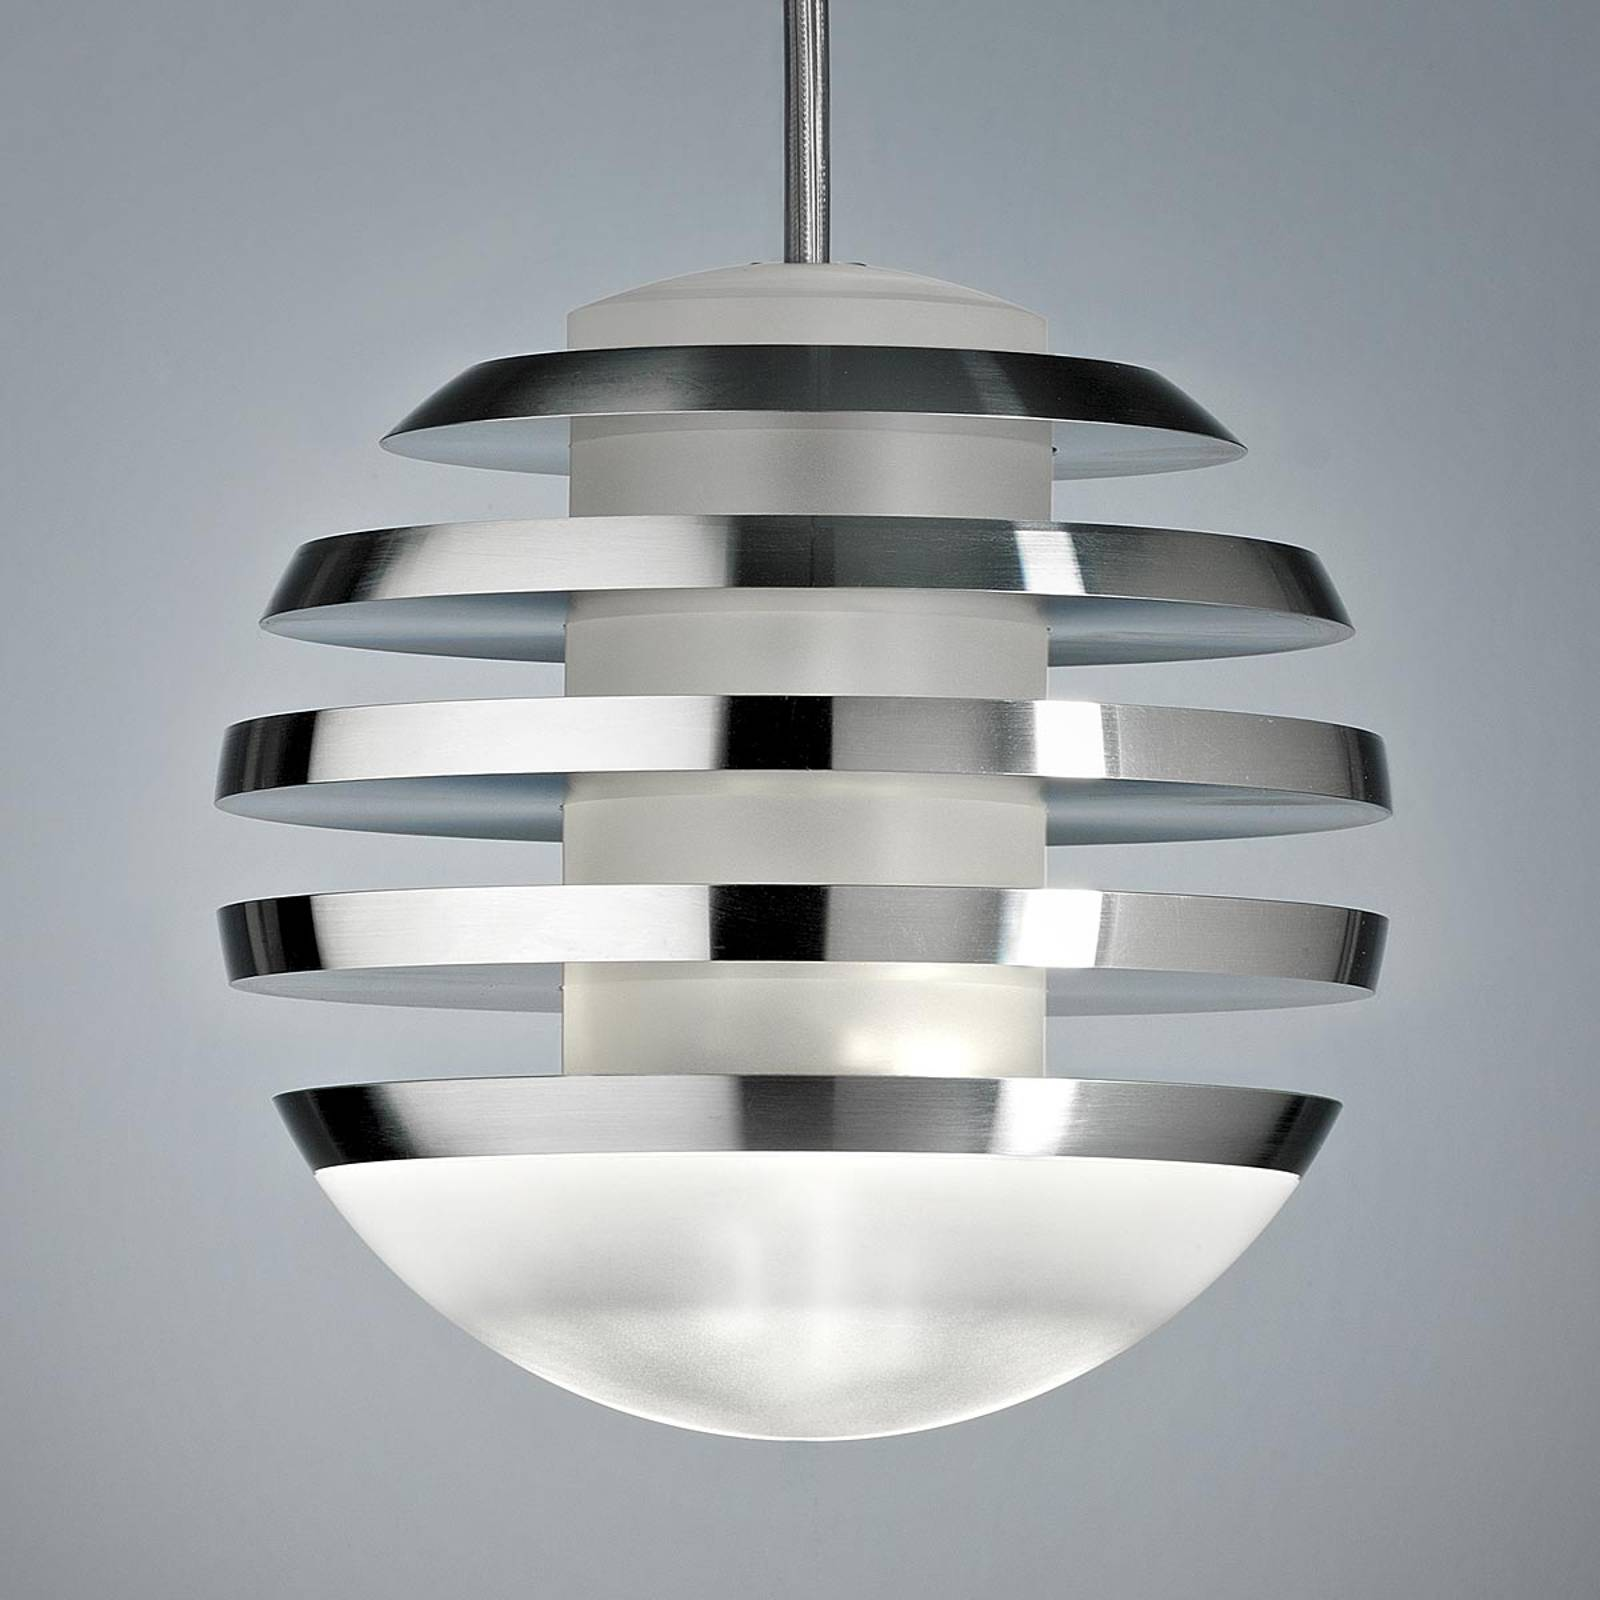 LED hanging light BULO, aluminium from TECNOLUMEN